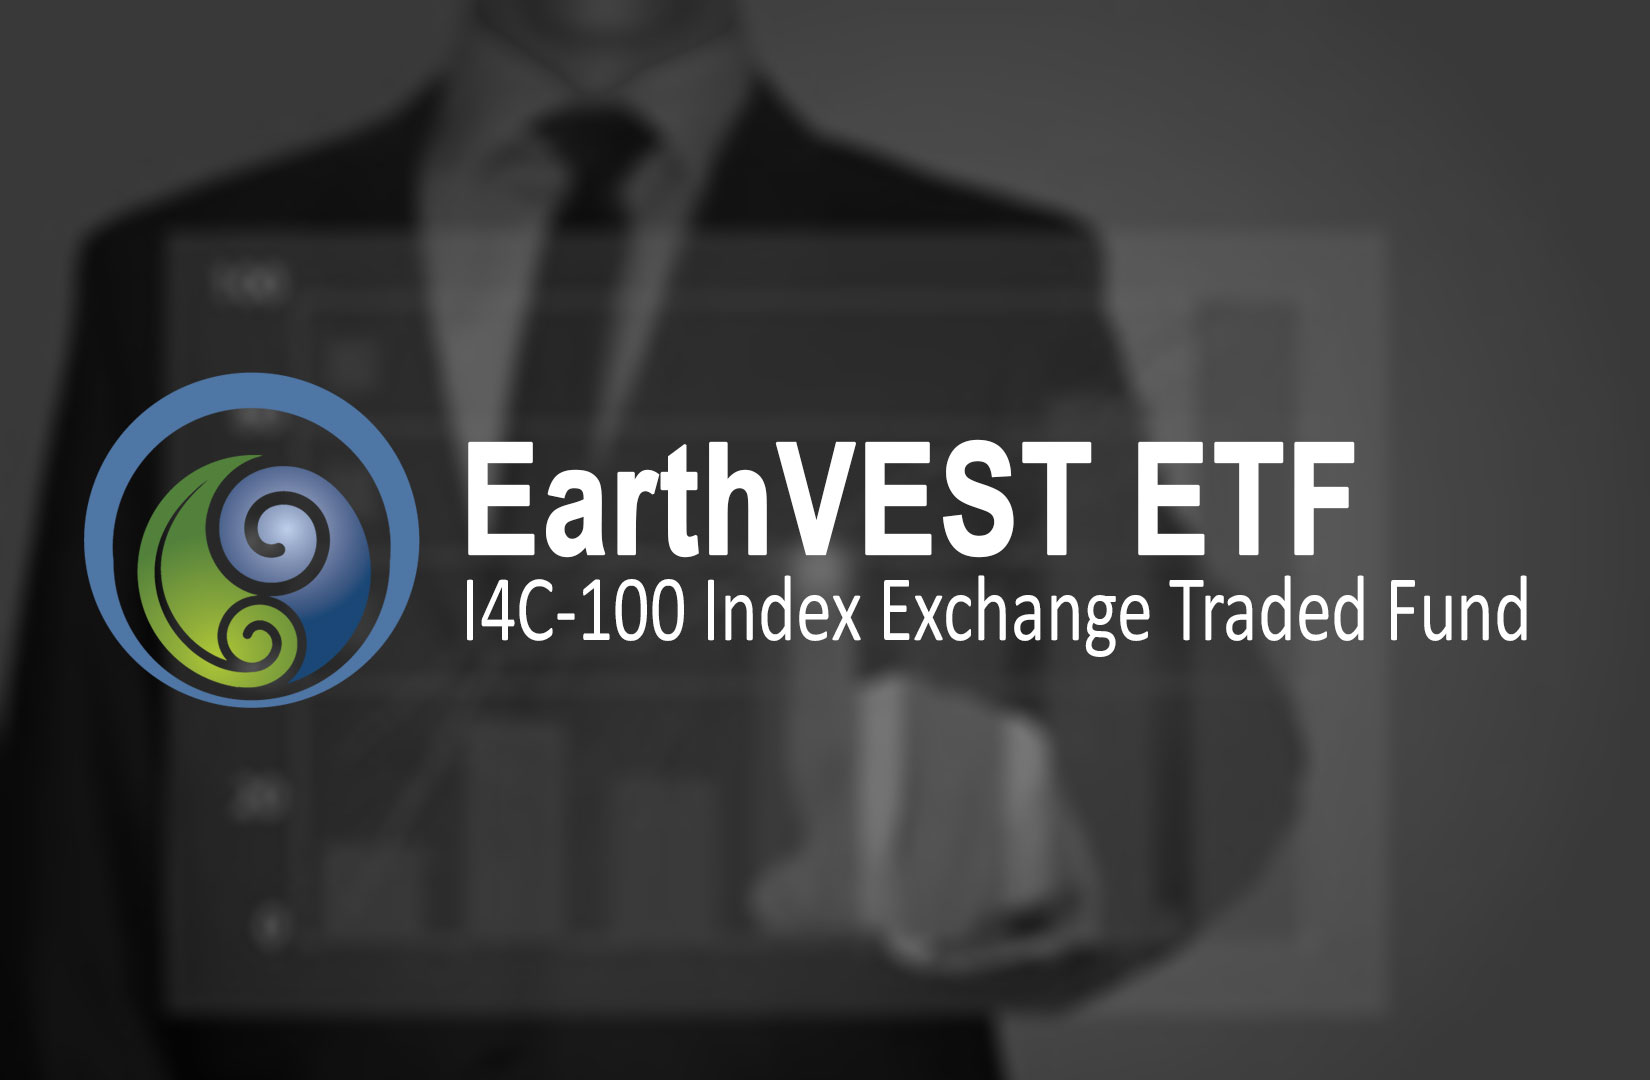 EarthVEST ETF - Exchange Traded Fund providing a hedge against share value erosion due to climate change risk.